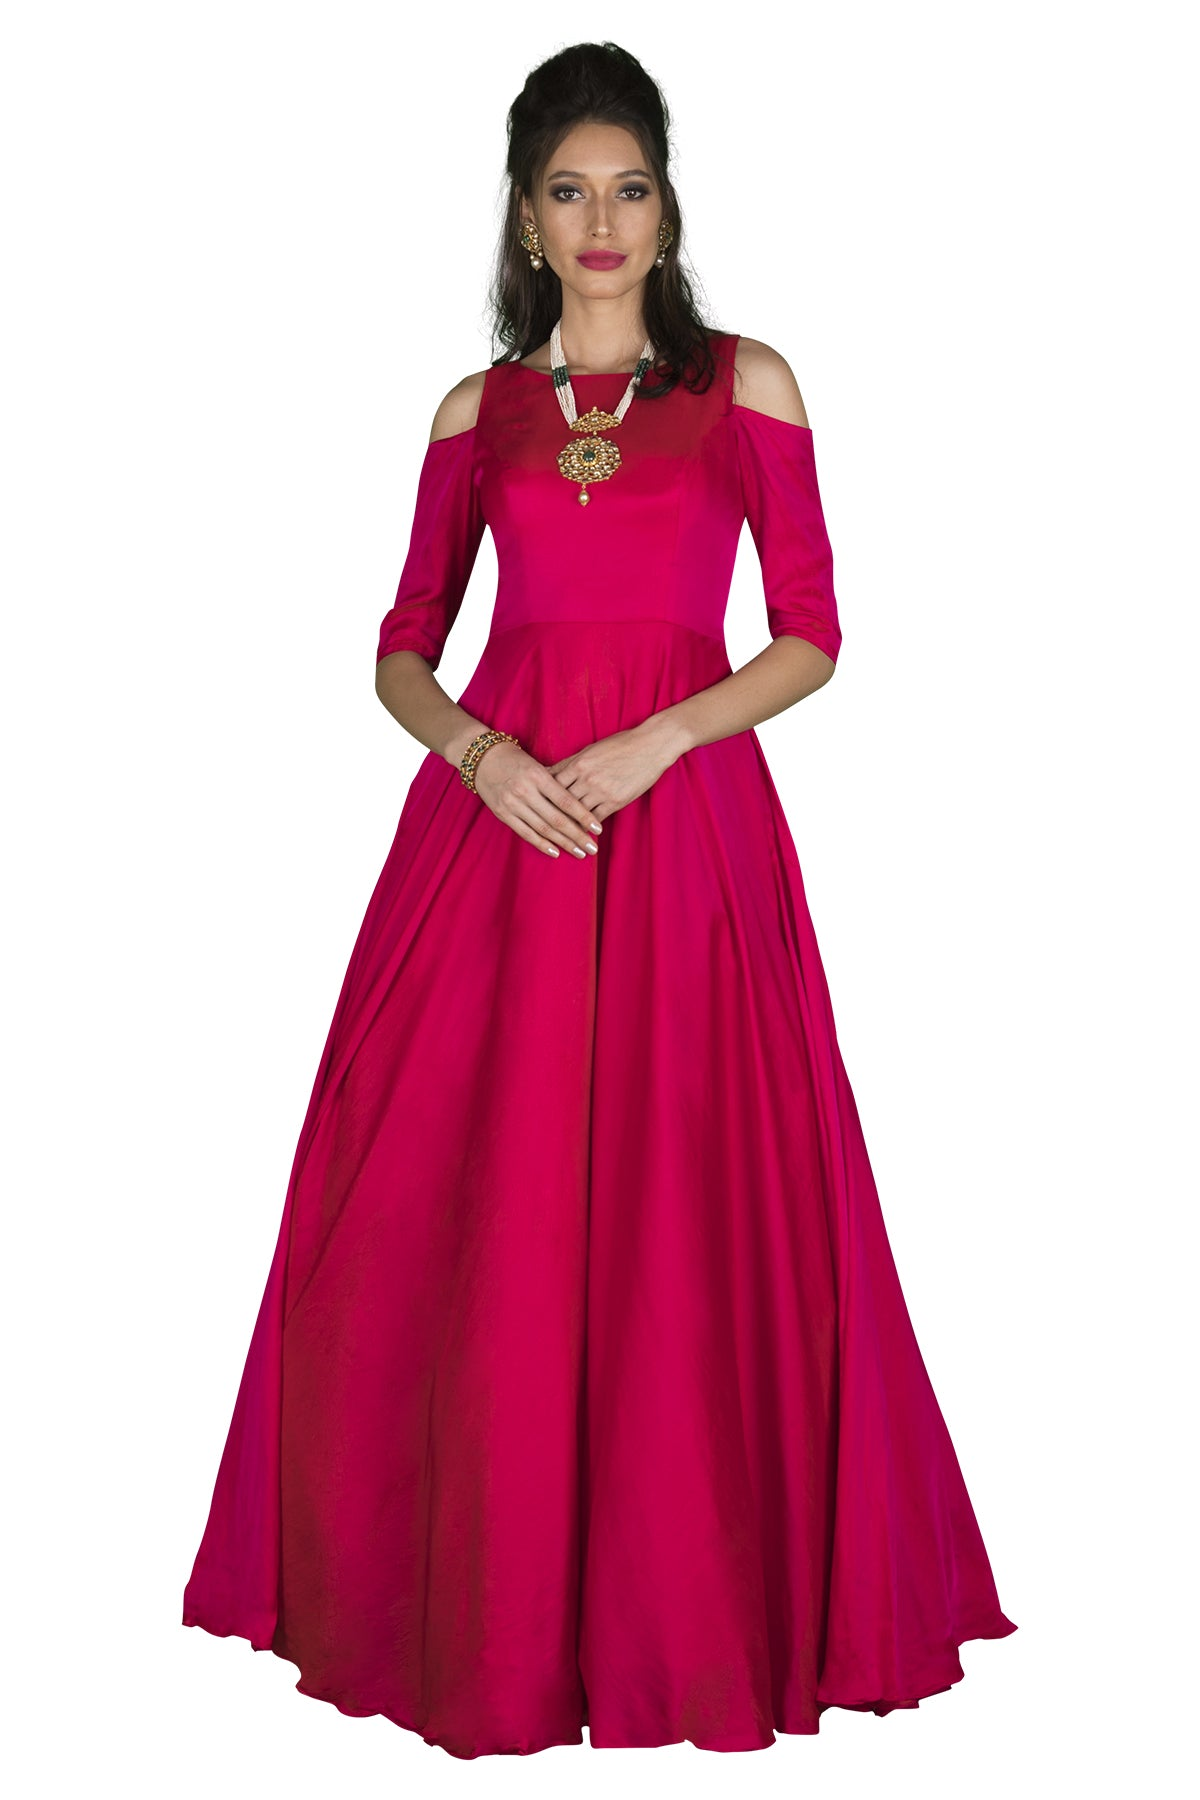 Stand tall and pinkture perfect in this flowy, cascading cocktail gown in bright pink silk.